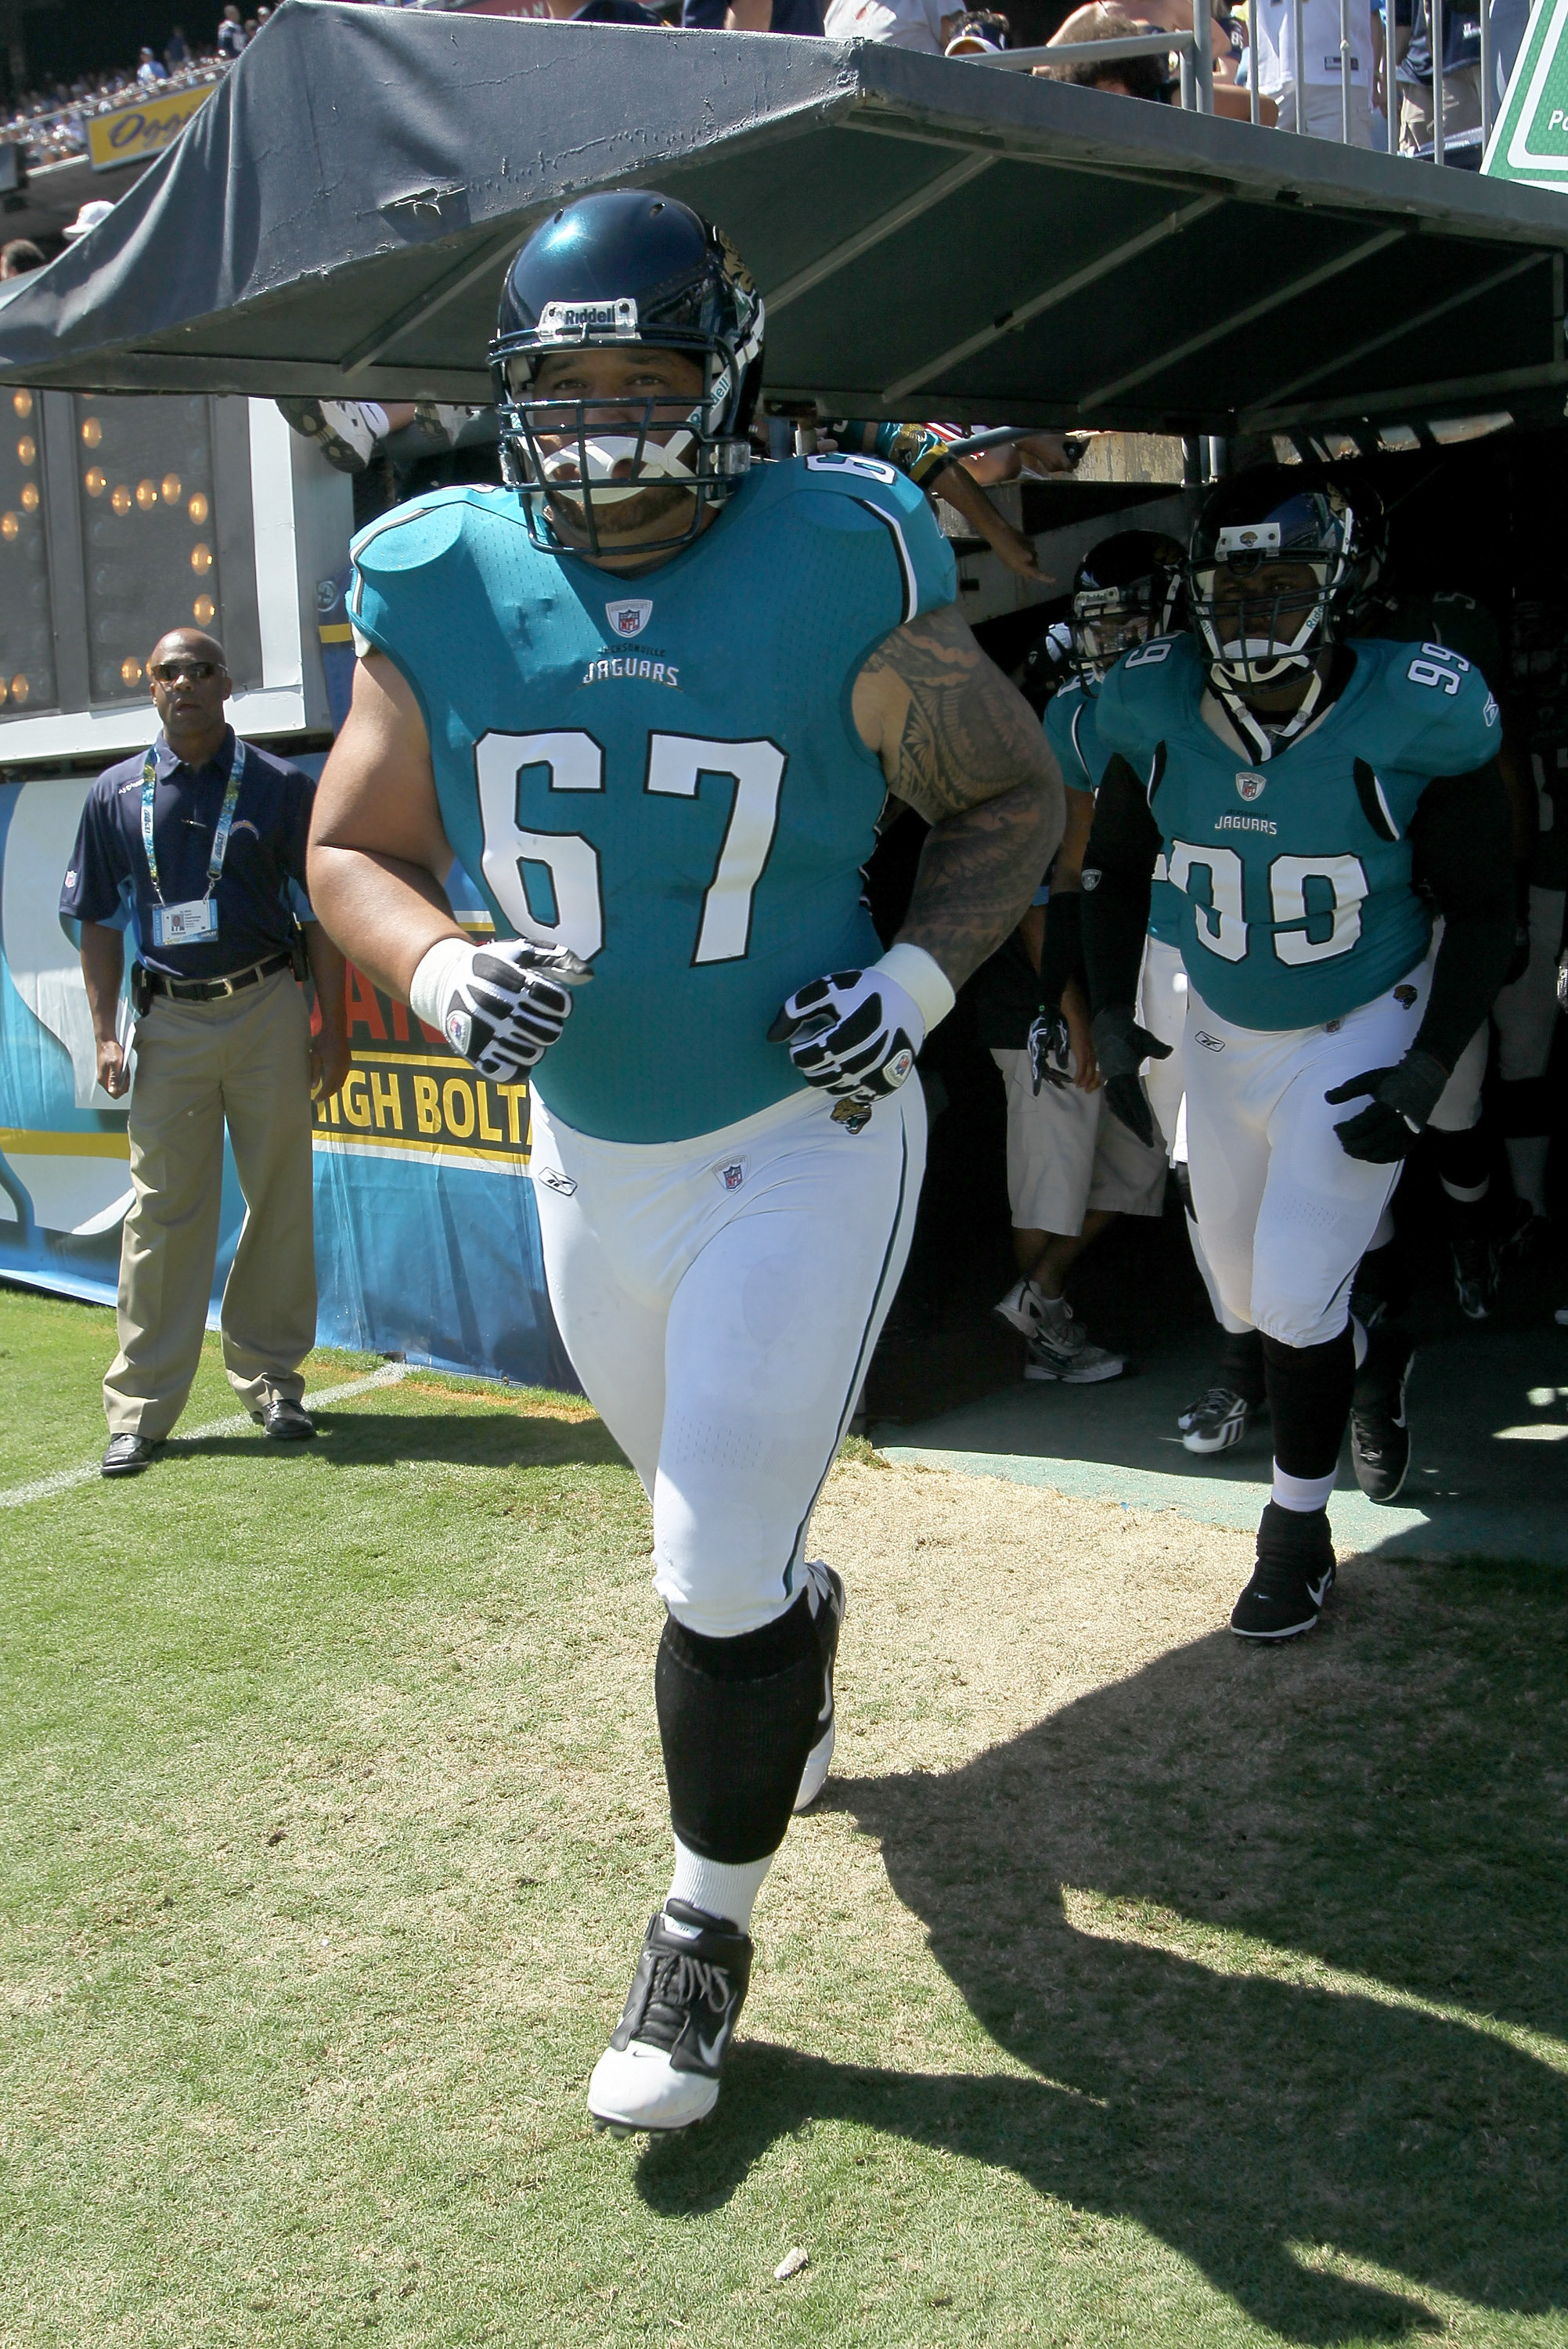 SAN DIEGO - SEPTEMBER 19:  Guard Vince Manuwai #67 of the Jacksonville Jaguars takes the field for the game with the San Diego Chargers at Qualcomm Stadium on September 19, 2010 in San Diego, California.  (Photo by Stephen Dunn/Getty Images)